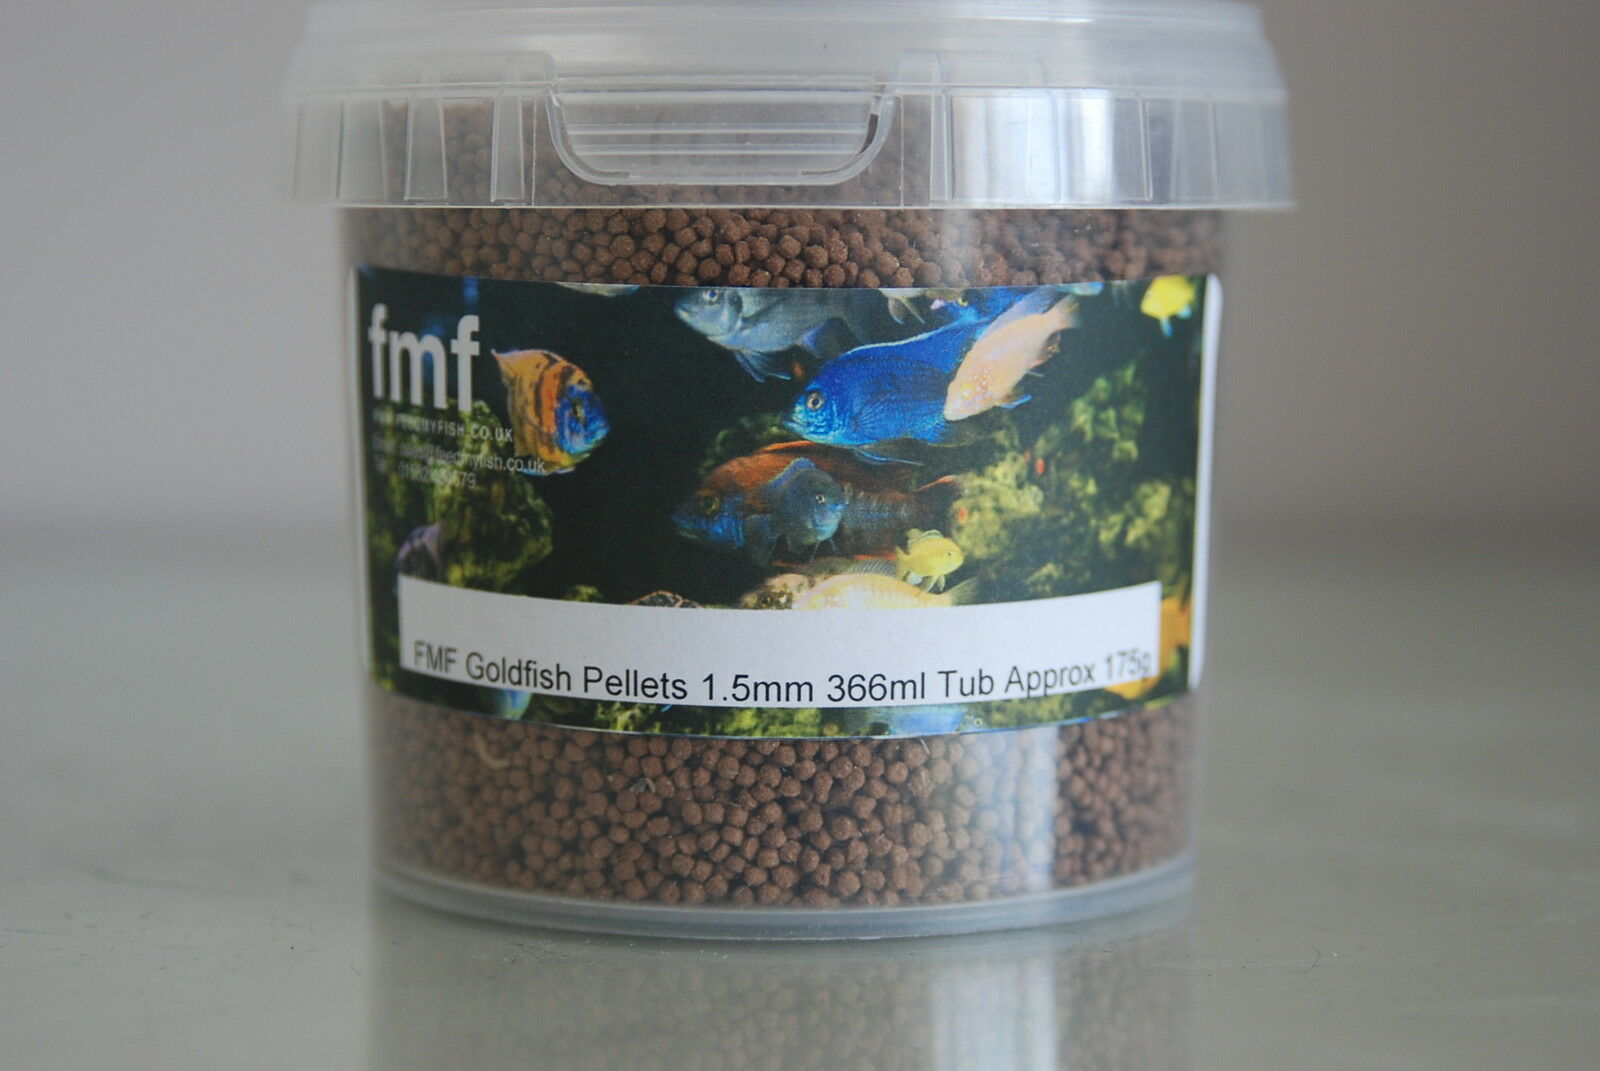 FMF Goldfish Pellets 1.5 mm Pellets 366ml Tub Approx 175g For All Coldwater Fish